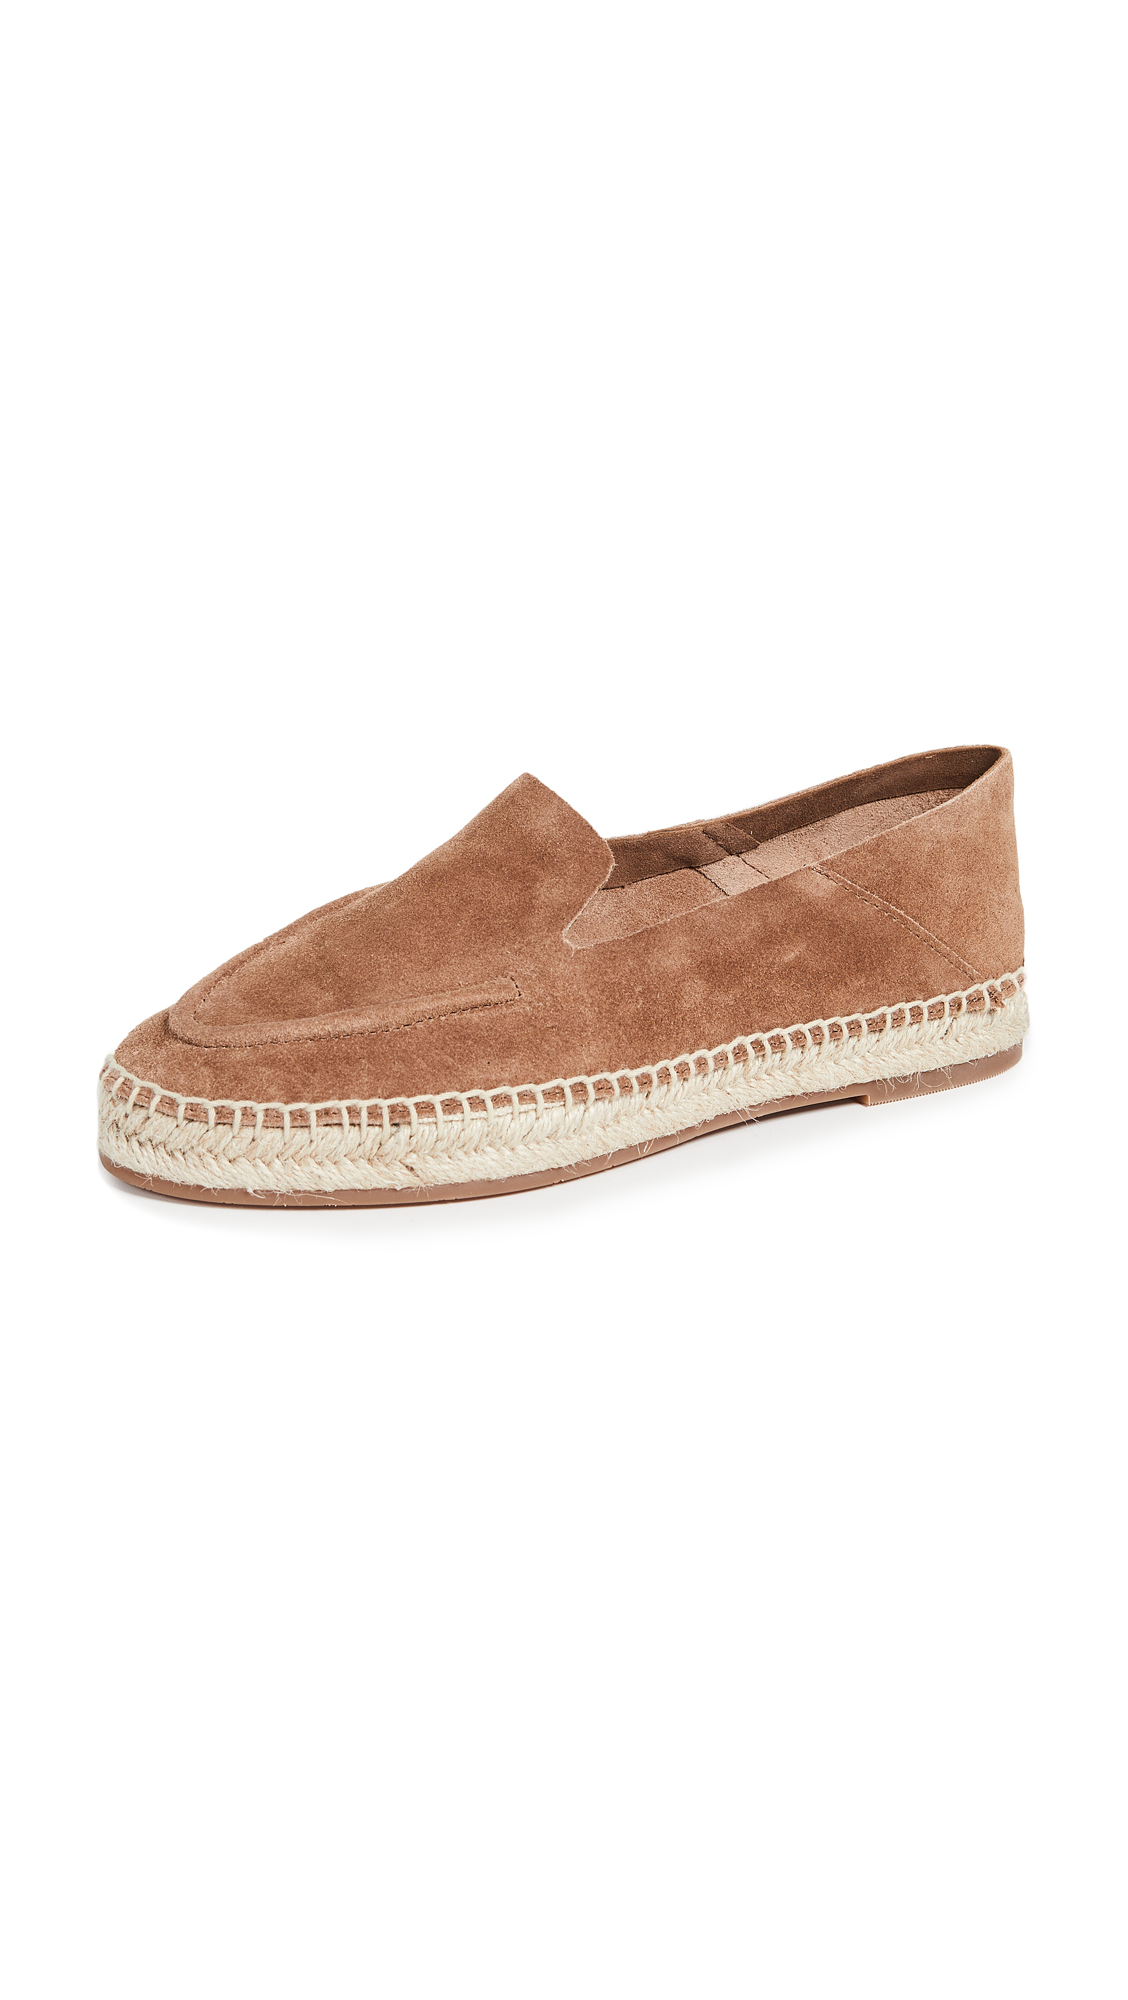 Splendid Simplicity Espadrilles - Latte Brown